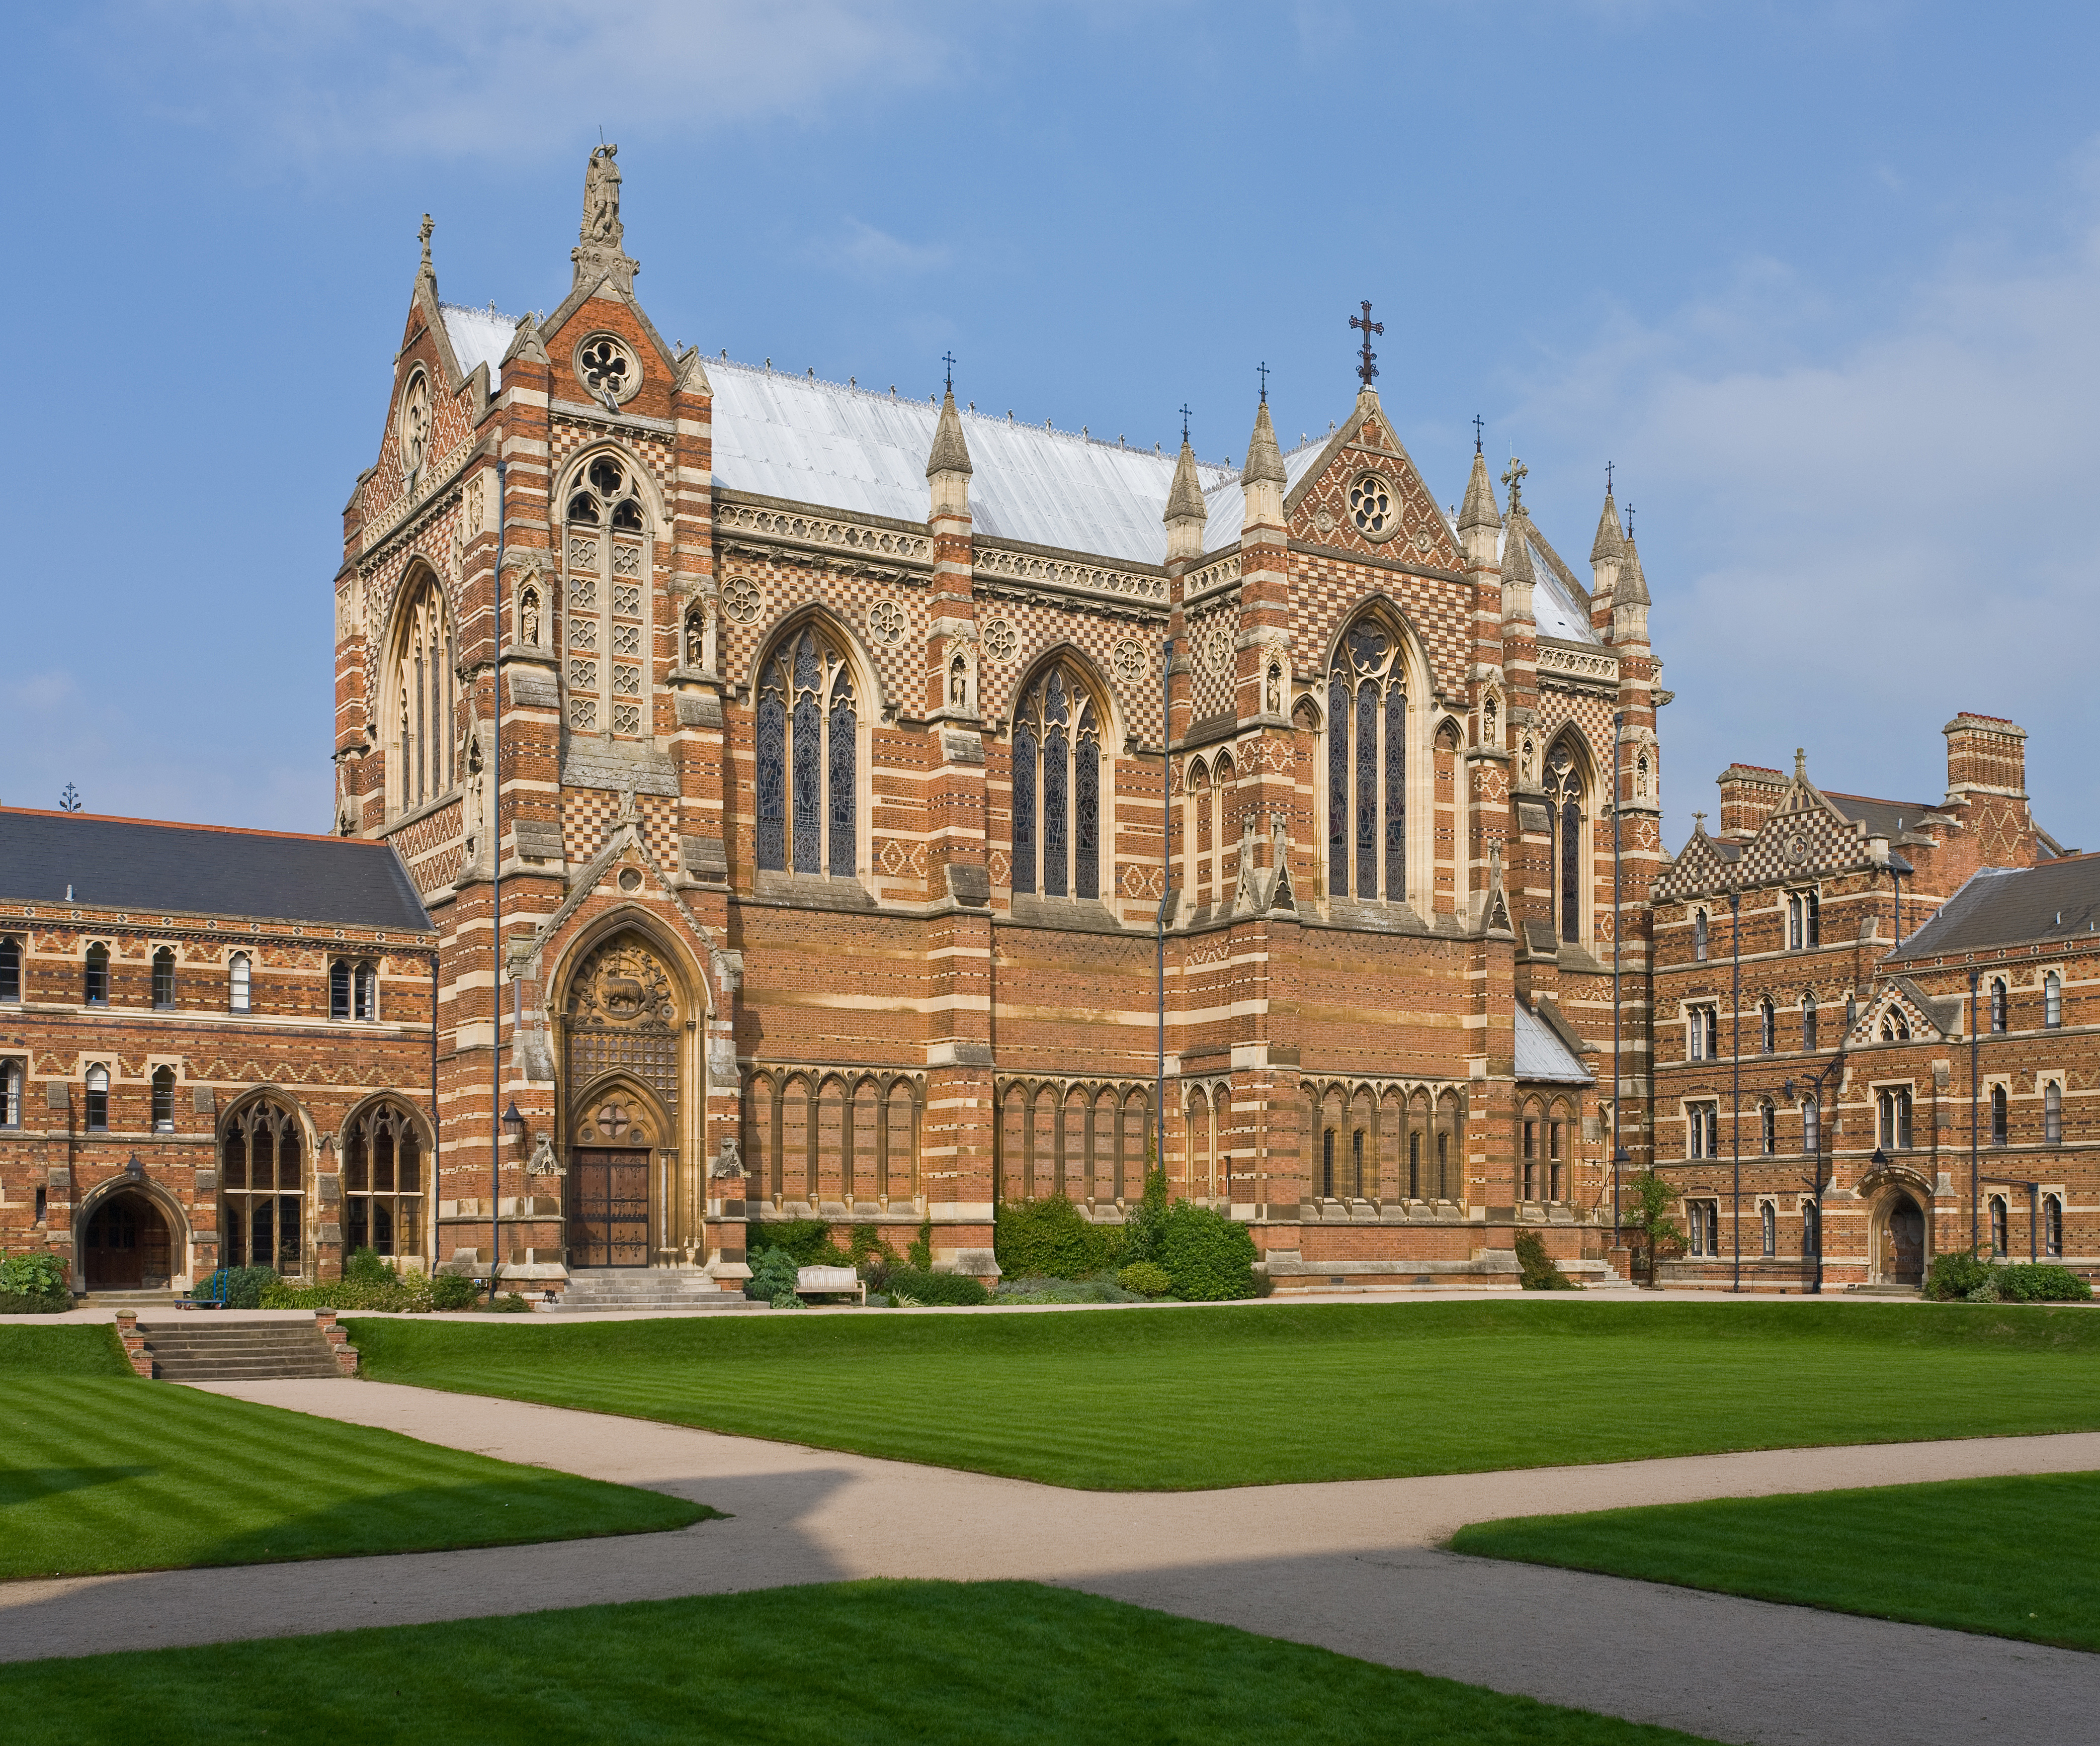 Keble College, one of the constituent colleges of the University of Оxford.